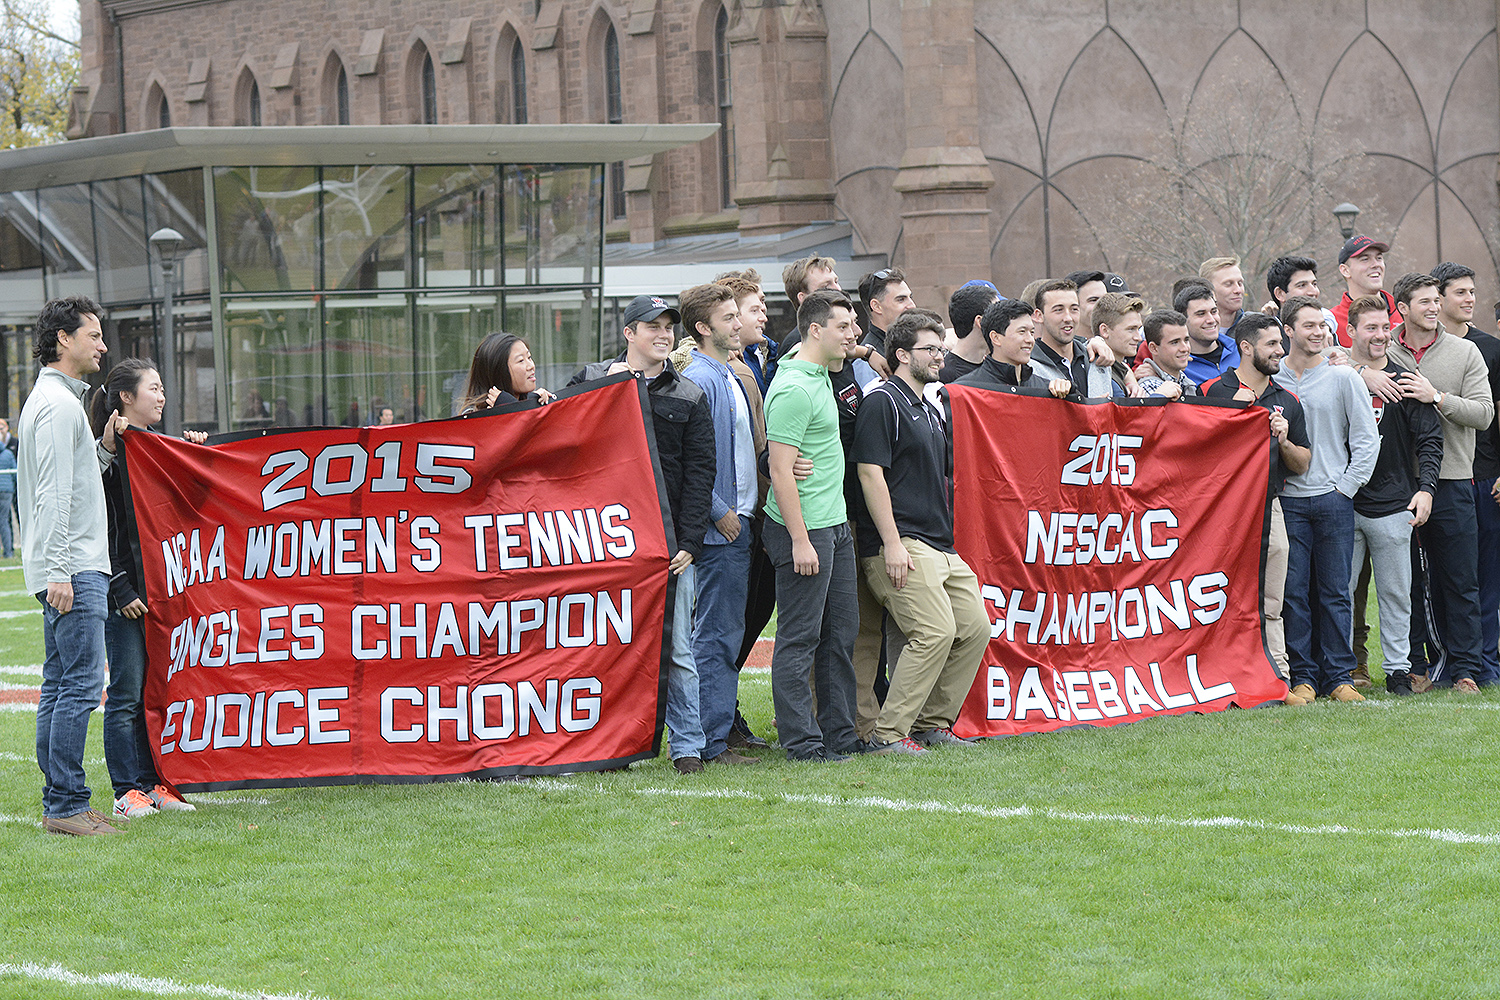 During Wesleyan's Homecoming game Saturday, Wesleyan's Director of Athletics Mike Whalen honored the achievements of outstanding student athletes. He praised the 2014-15 men's basketball team, 2015 baseball team, and tennis stars Eudice Chong '18 and Victoria Yu '19.